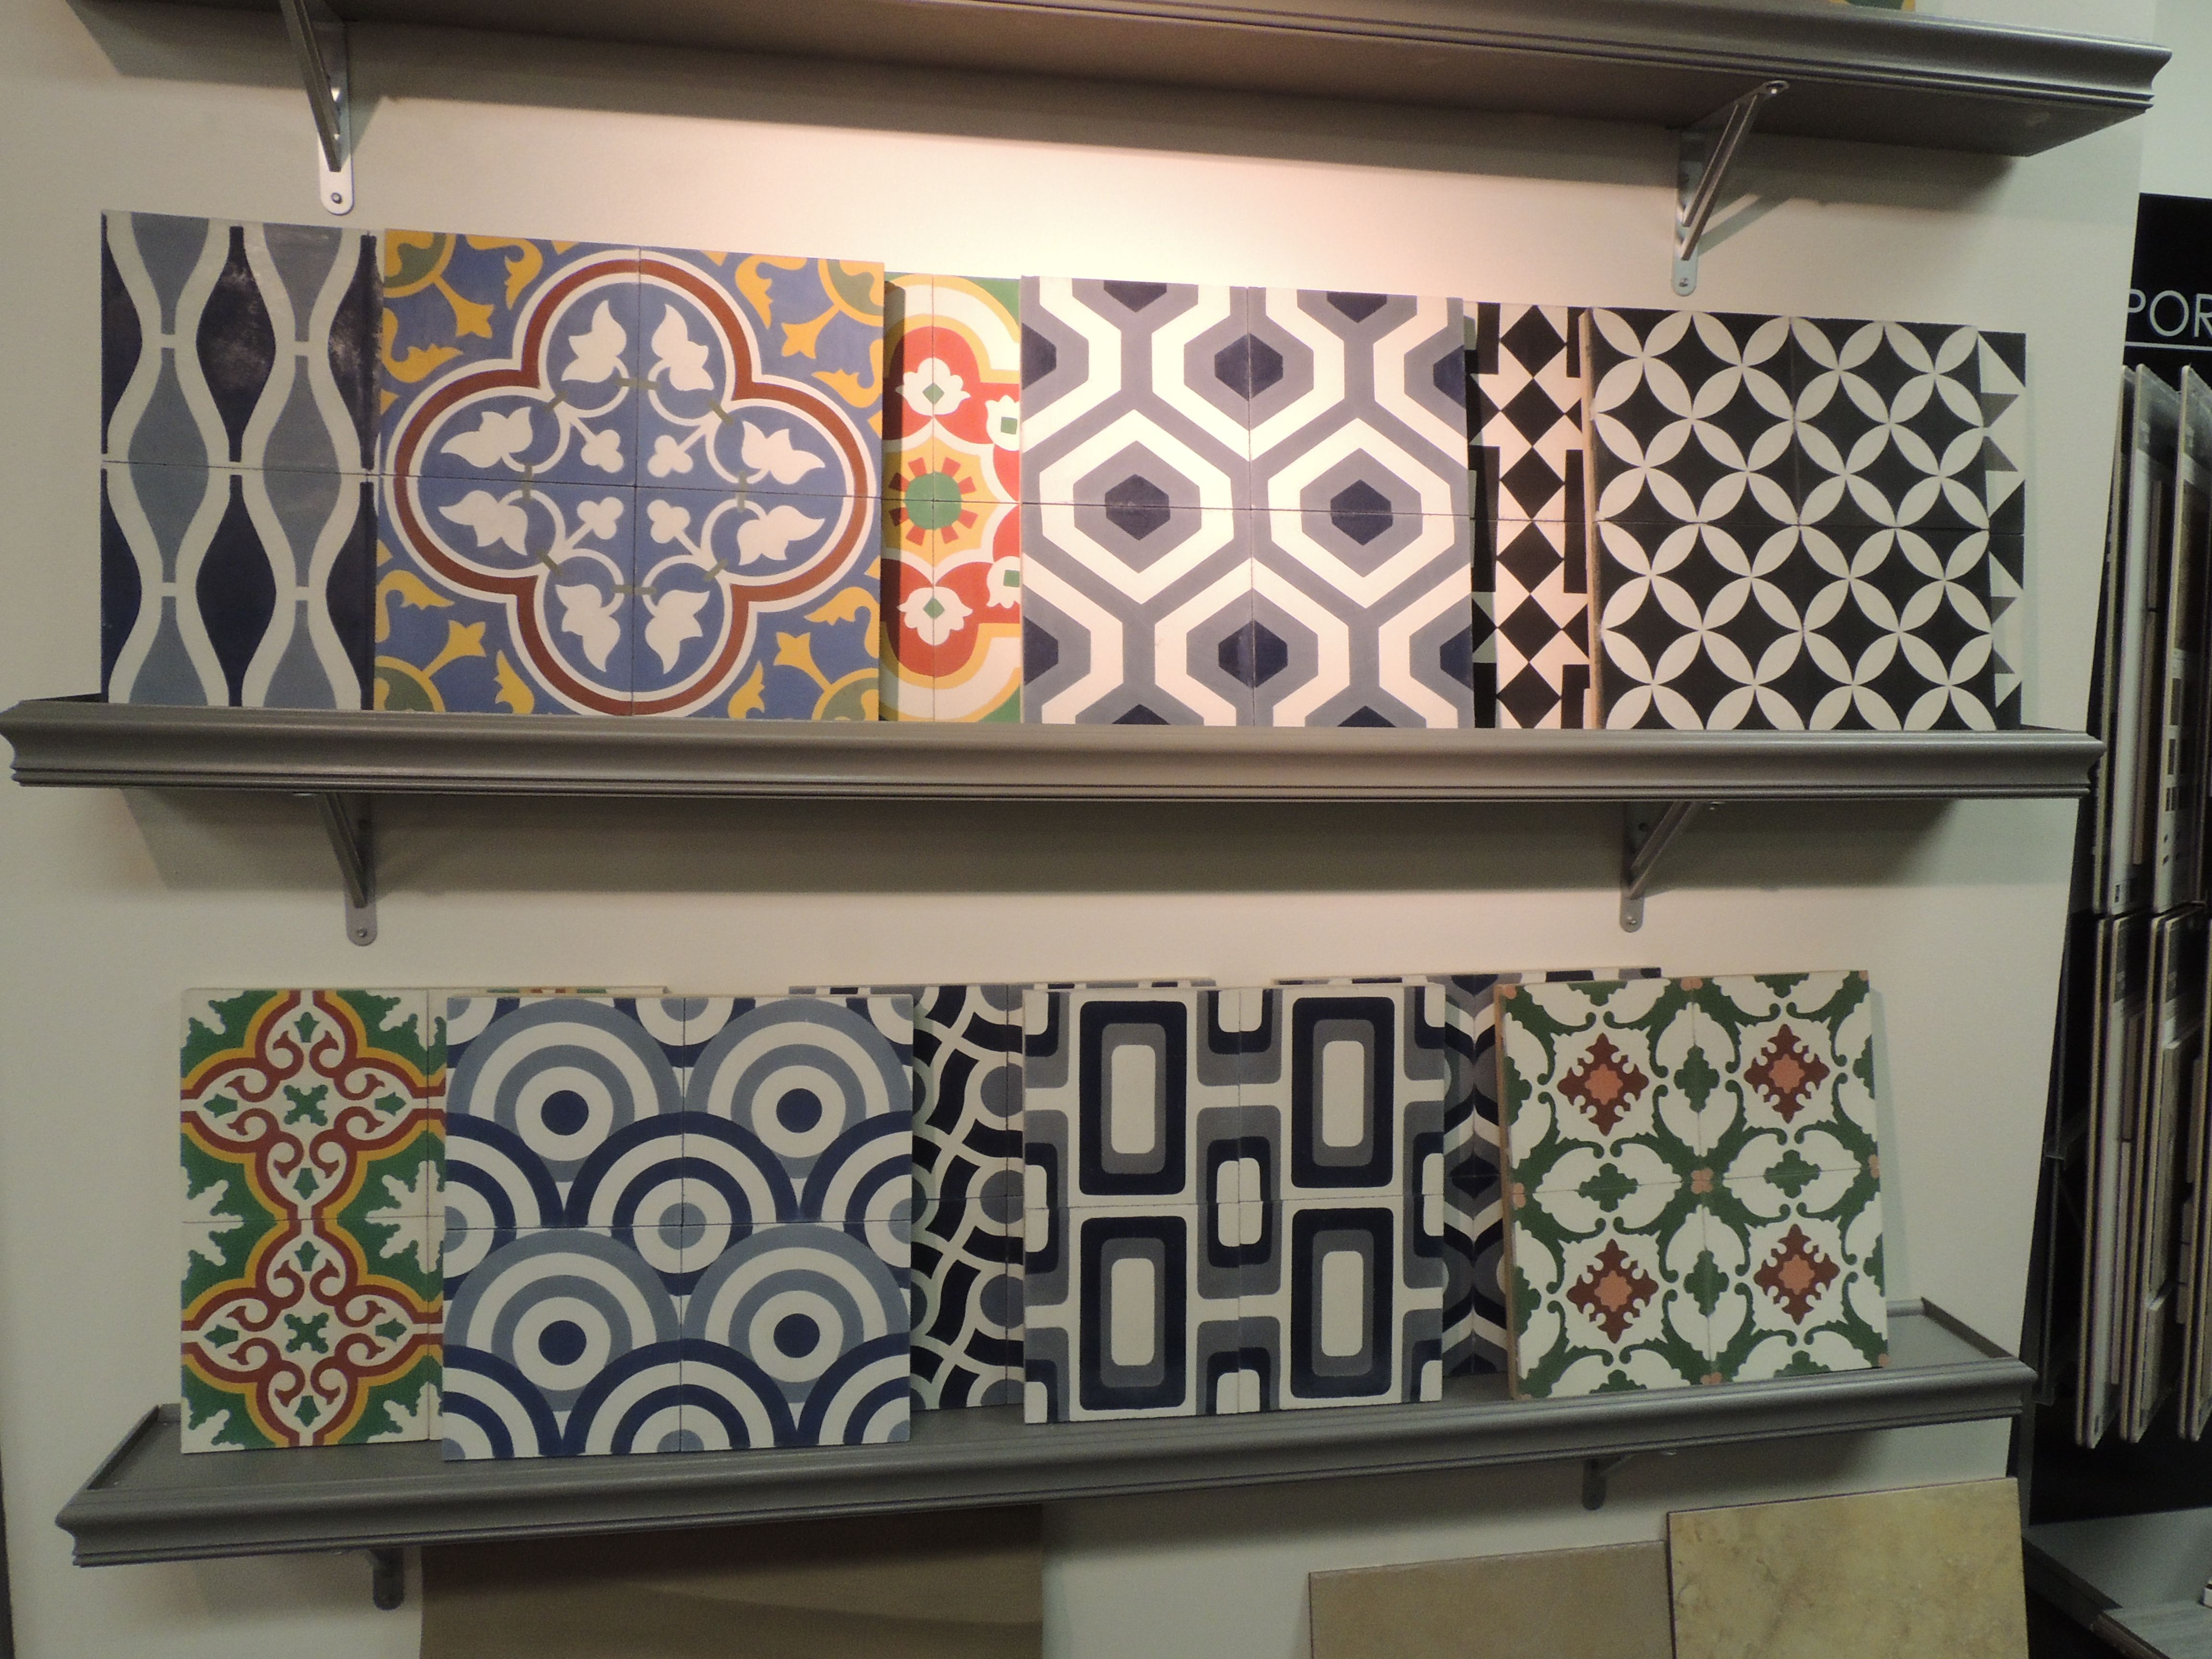 Uncategorized Mexican Tiles For Kitchen Backsplash mexican tiles for kitchen backsplash kass us handcrafted powder room pinterest mexican